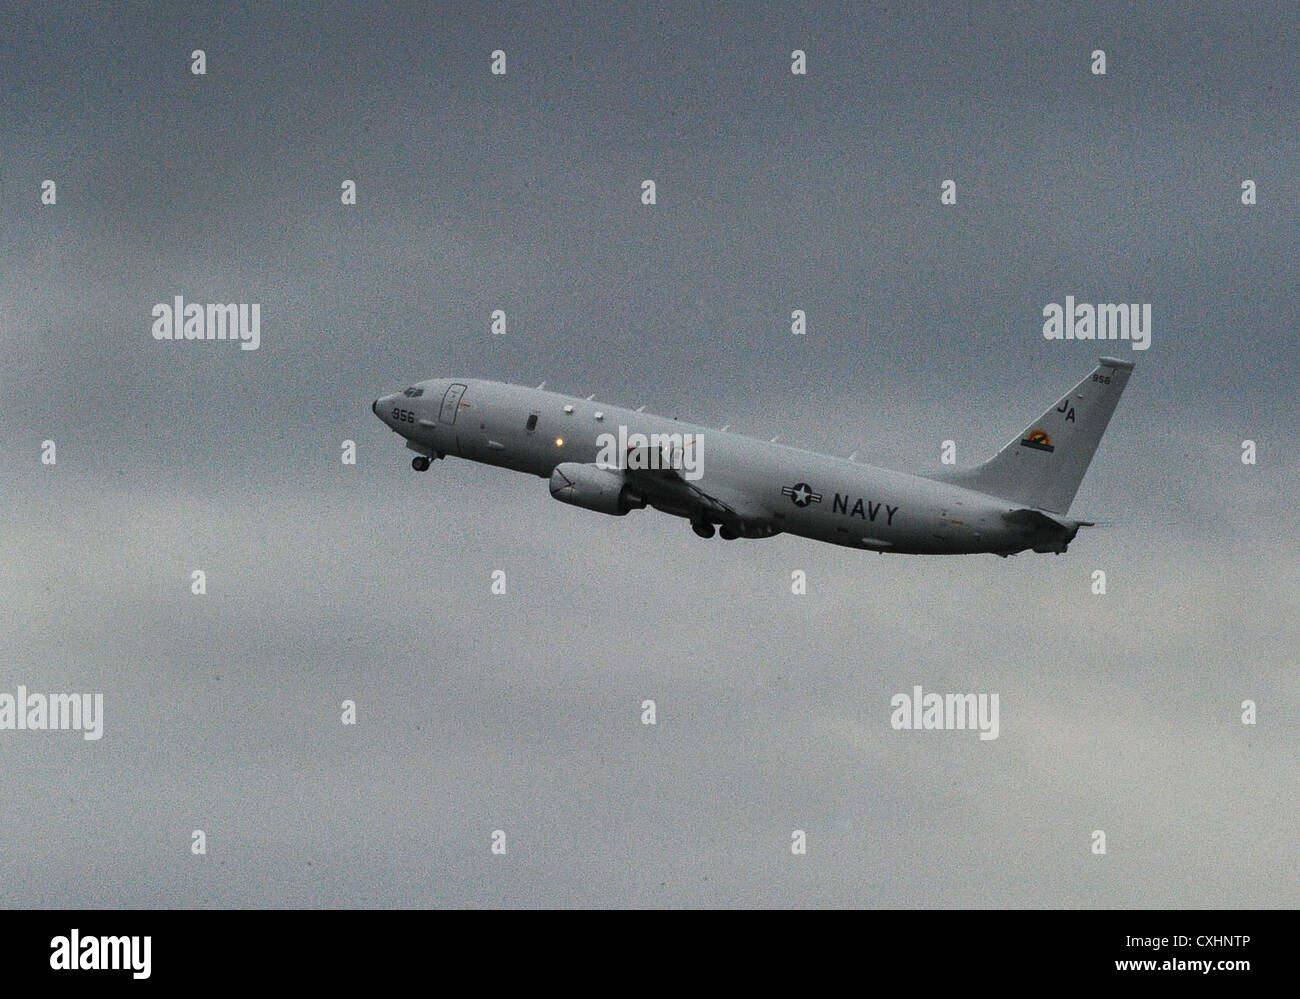 A P-8A Poseidon takes off from the flight line at Naval Air Facility Atsugi. The P-8A Poseidon is the Navy's - Stock Image